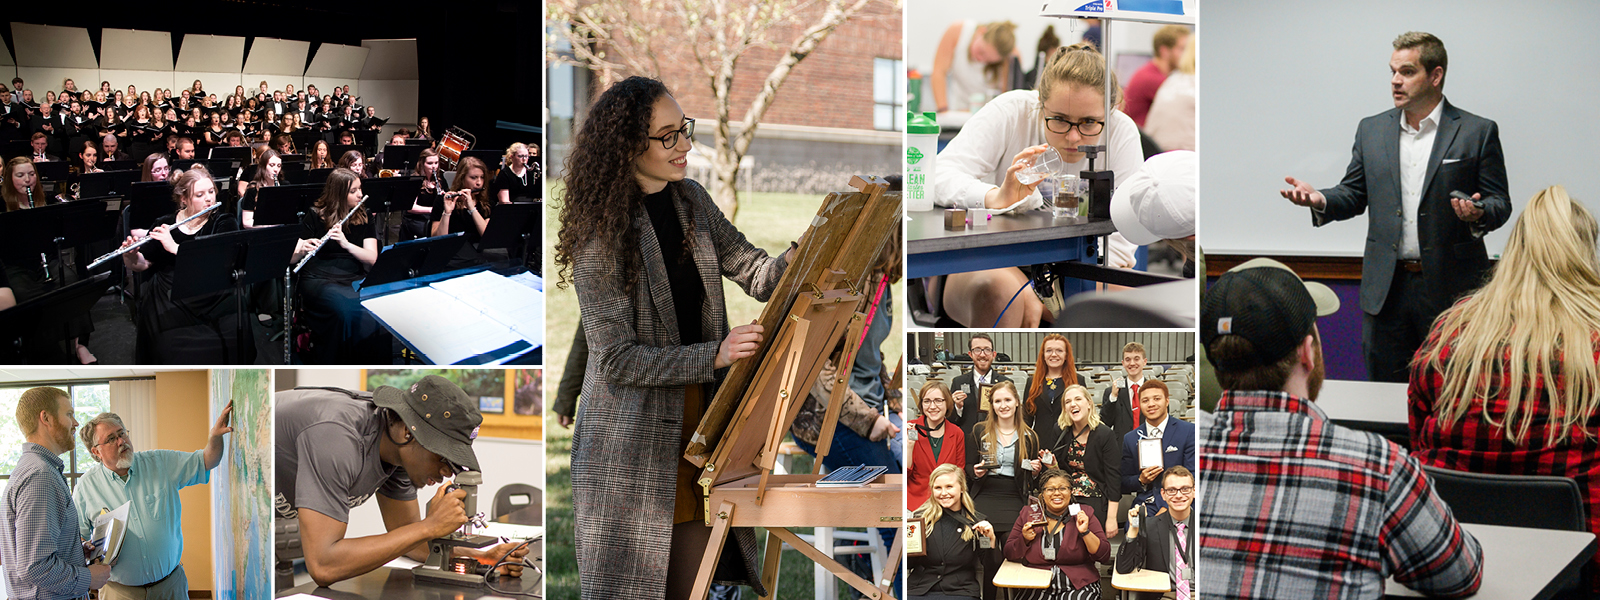 collage of photos showing students at work in areas of art, communication, sciences, etc.